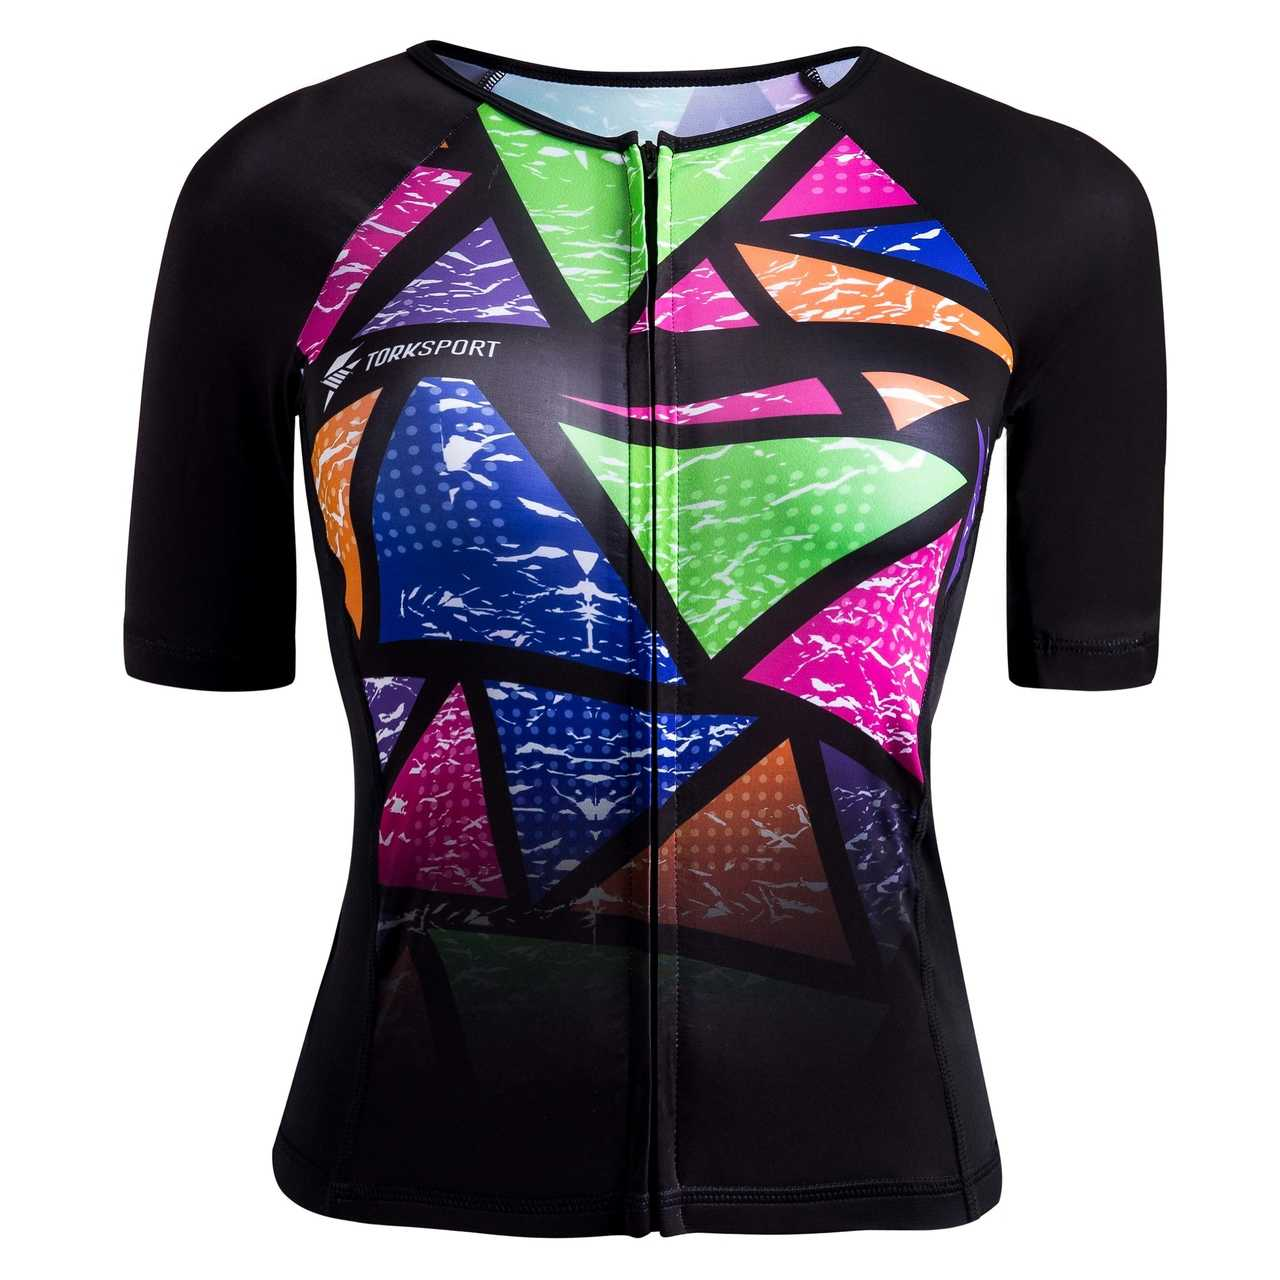 TOP COM MANGAS TRIATHLON FEMININO (COLORFUL TILES)